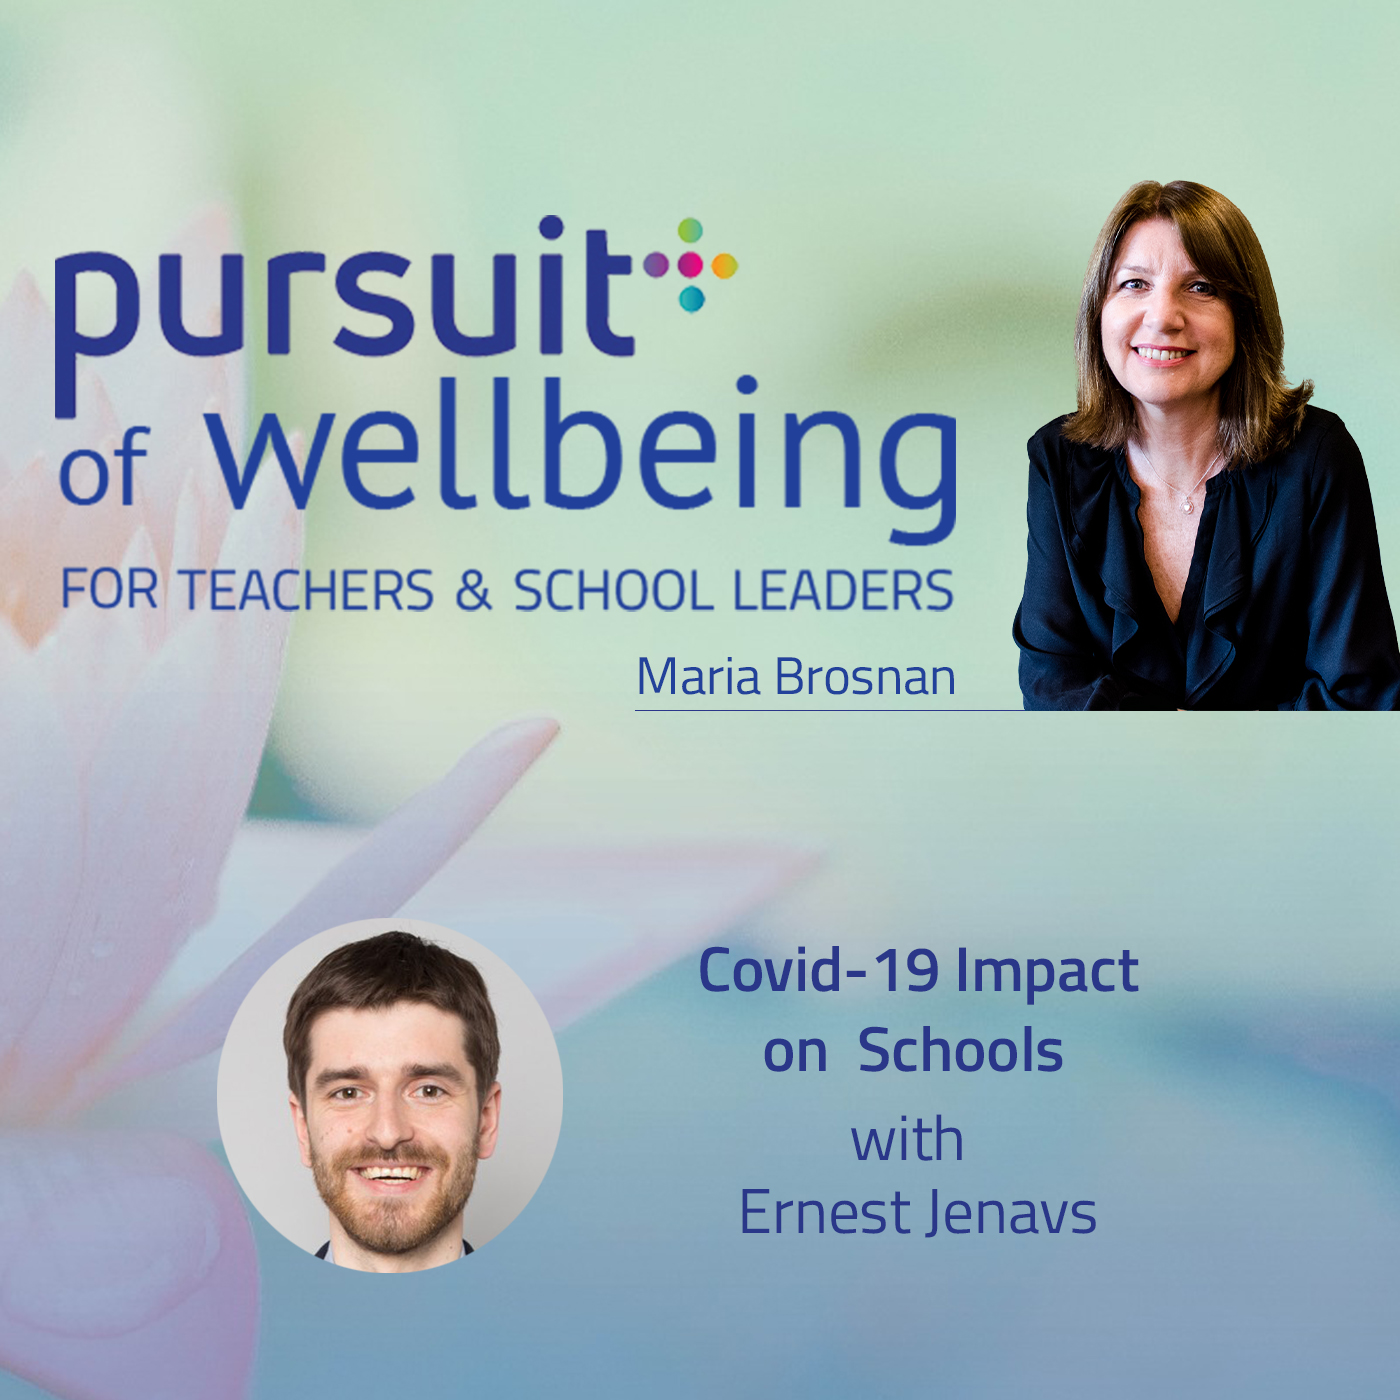 Covid-19 Impact on Schools with Ernest Jenavs